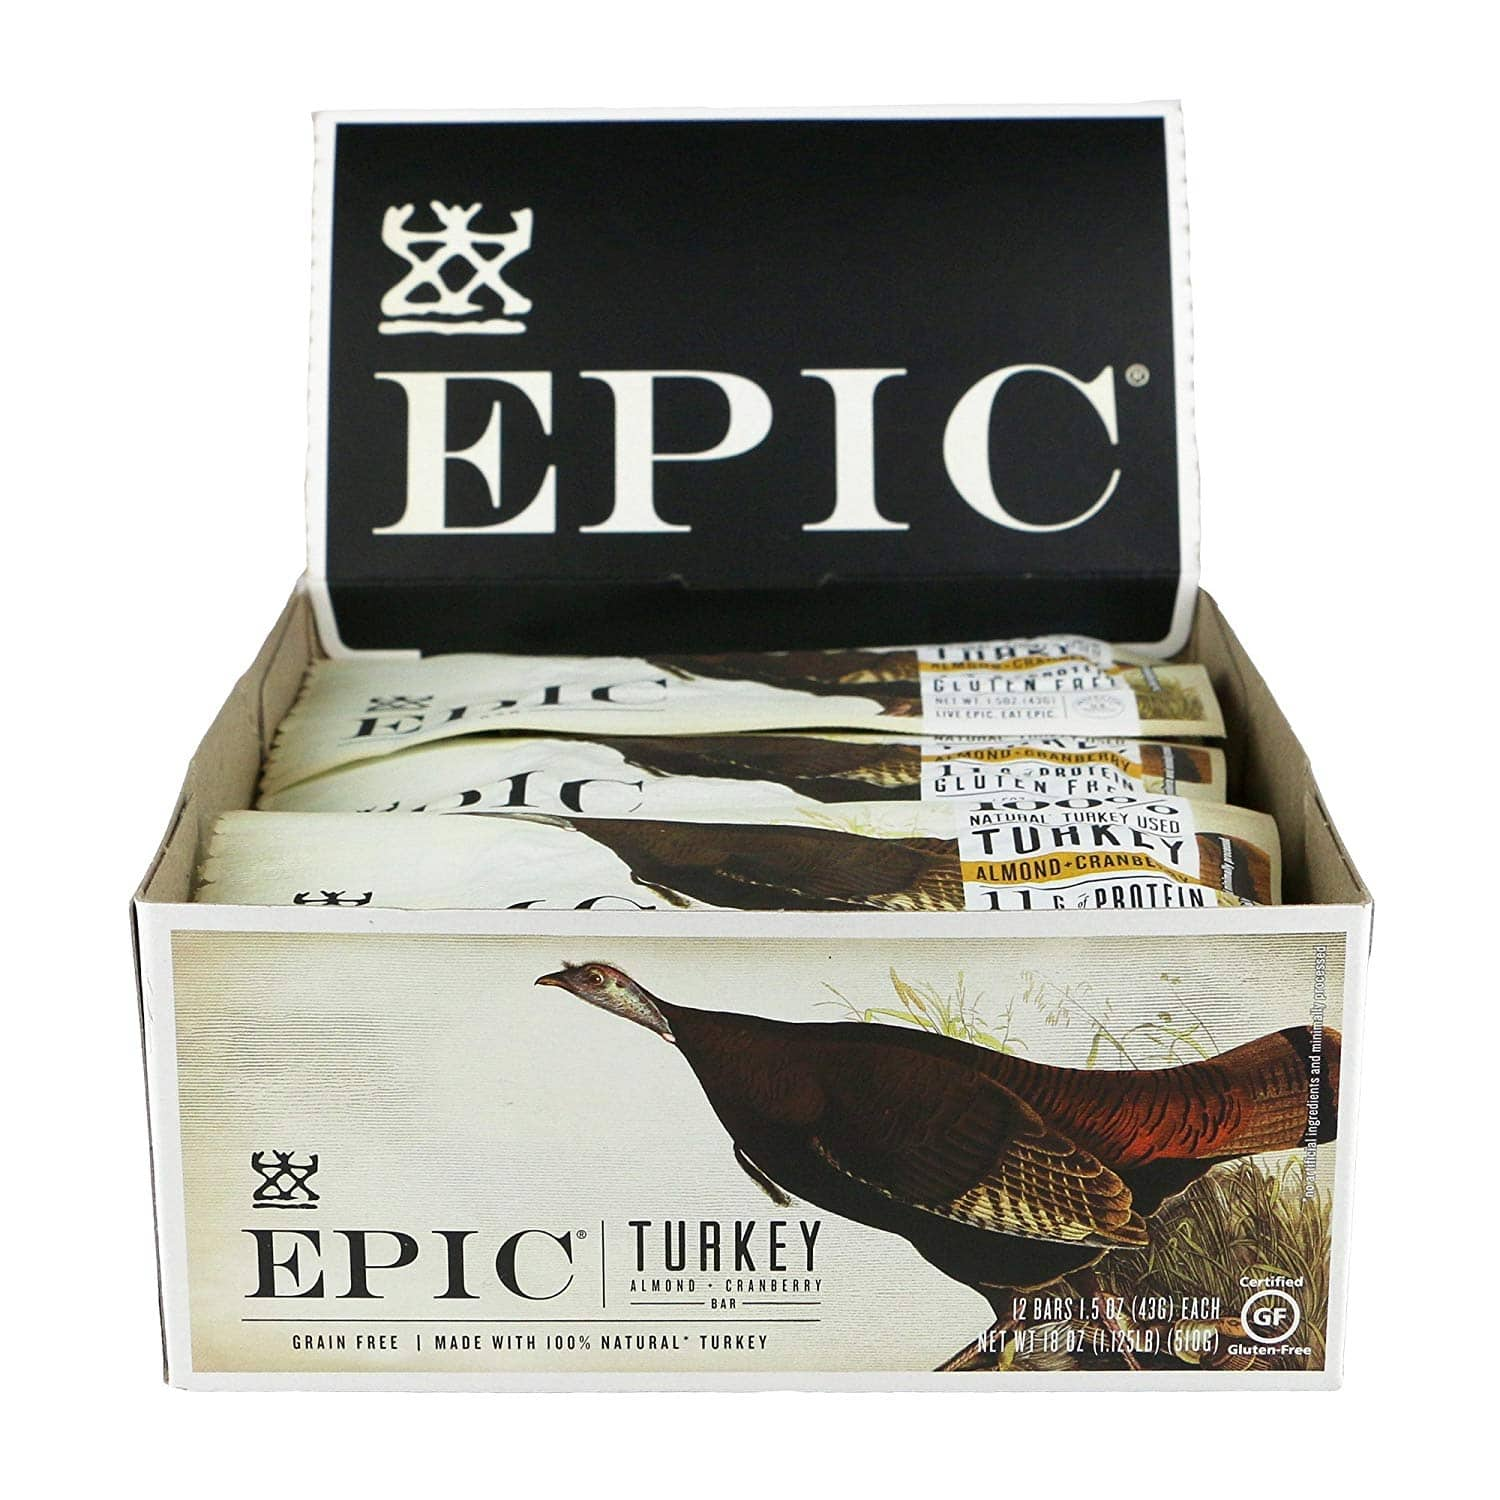 EPIC Turkey Almond Cranberry Protein Bars, Whole30, 12 Count Box 1.5oz bars: $9.42 or less w/S&S